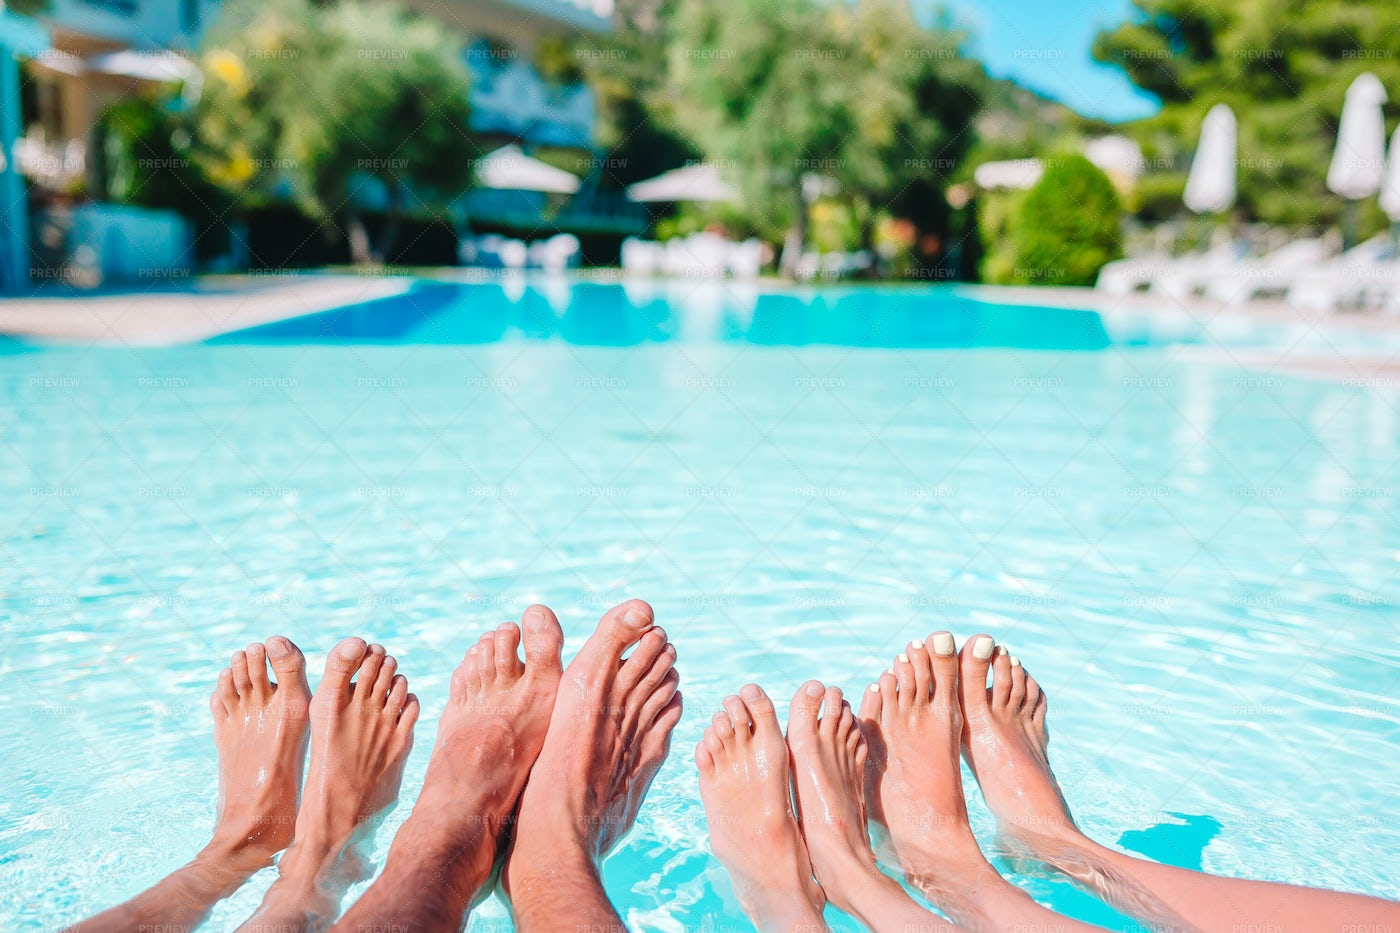 Four People's Legs By Pool: Stock Photos